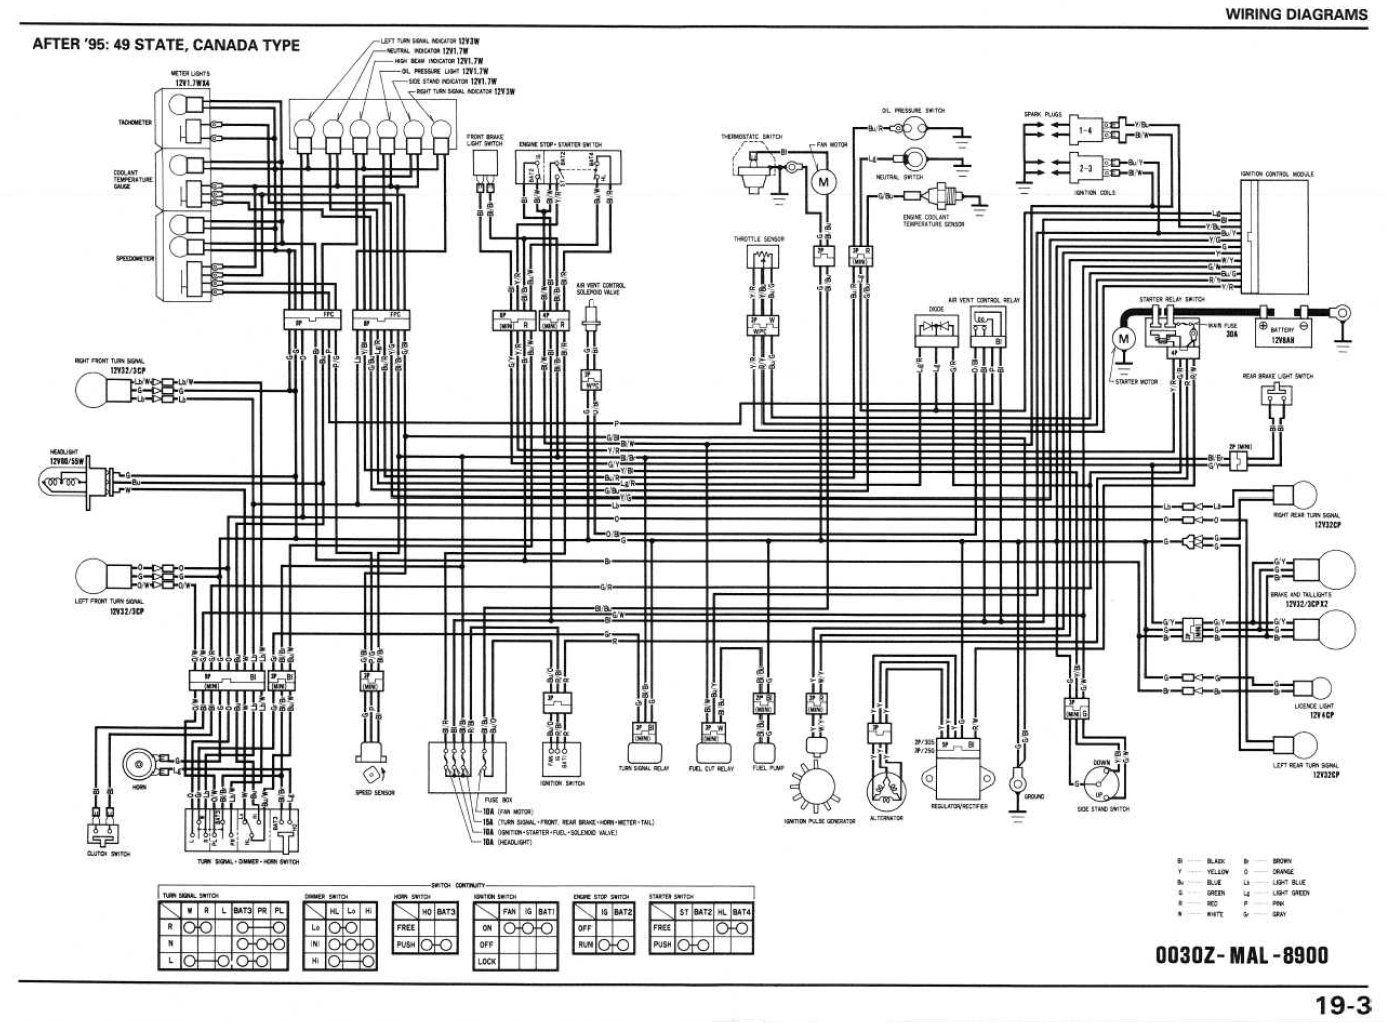 cbr 600 f4 wiring diagram cbr image wiring diagram cbr f3 wiring diagram cbr home wiring diagrams on cbr 600 f4 wiring diagram